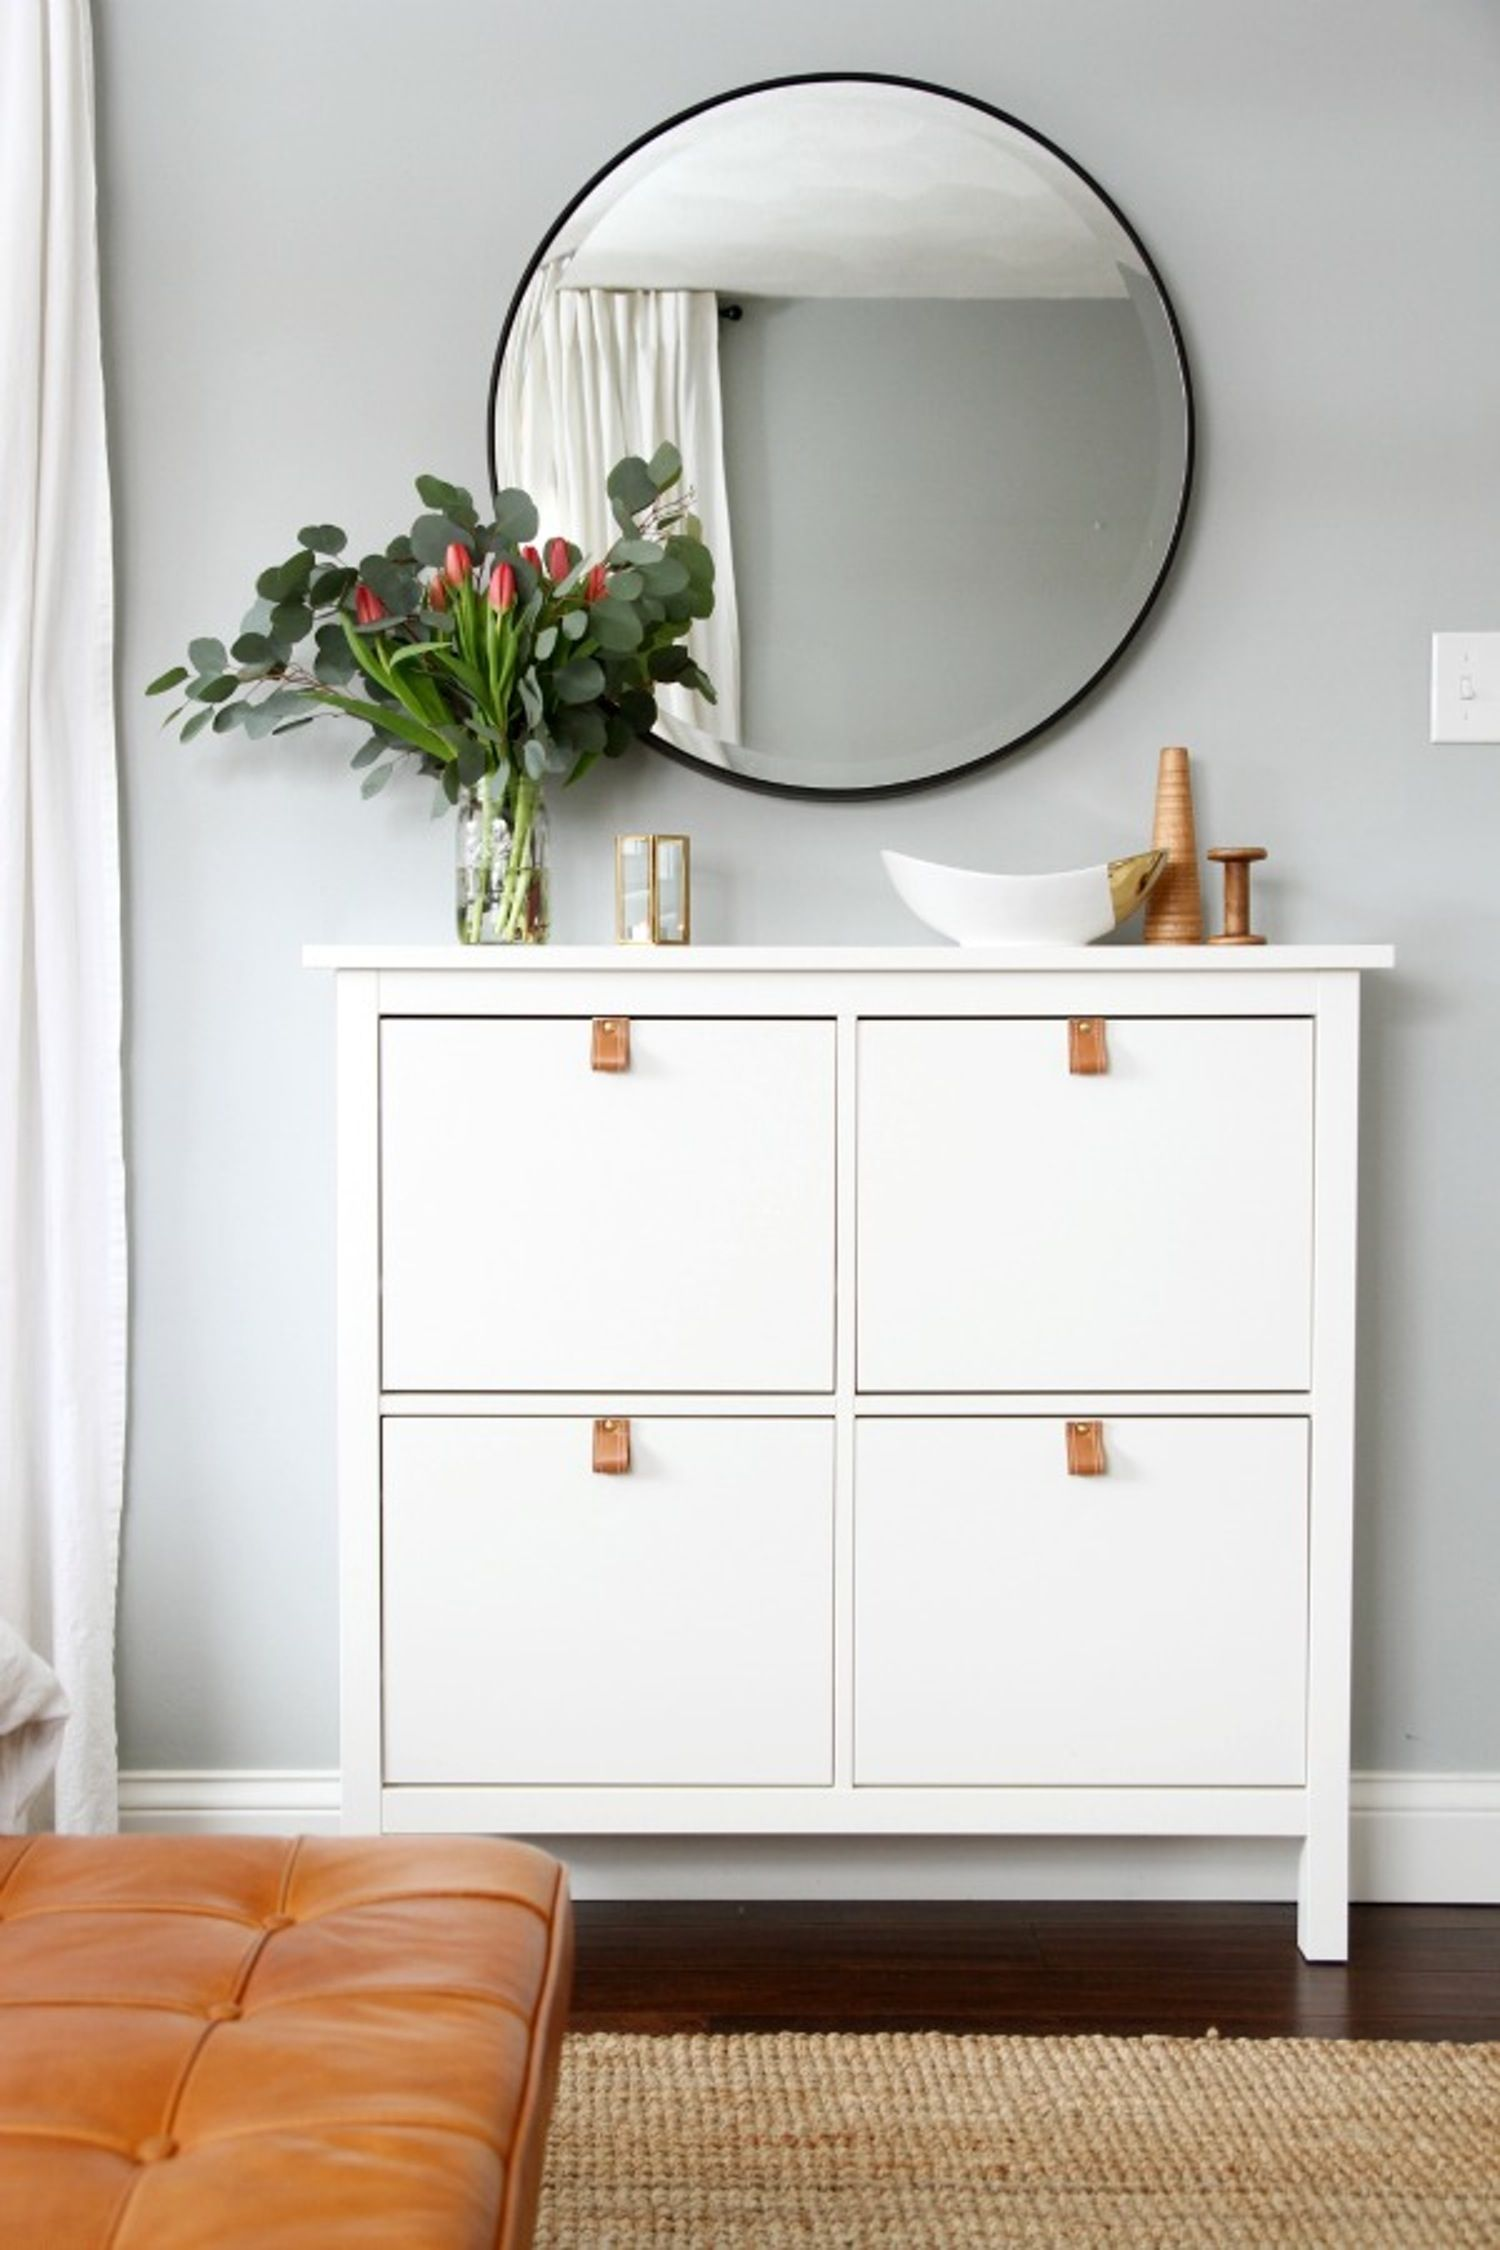 easy ikea upgrades big impact small effort pinterest 北欧